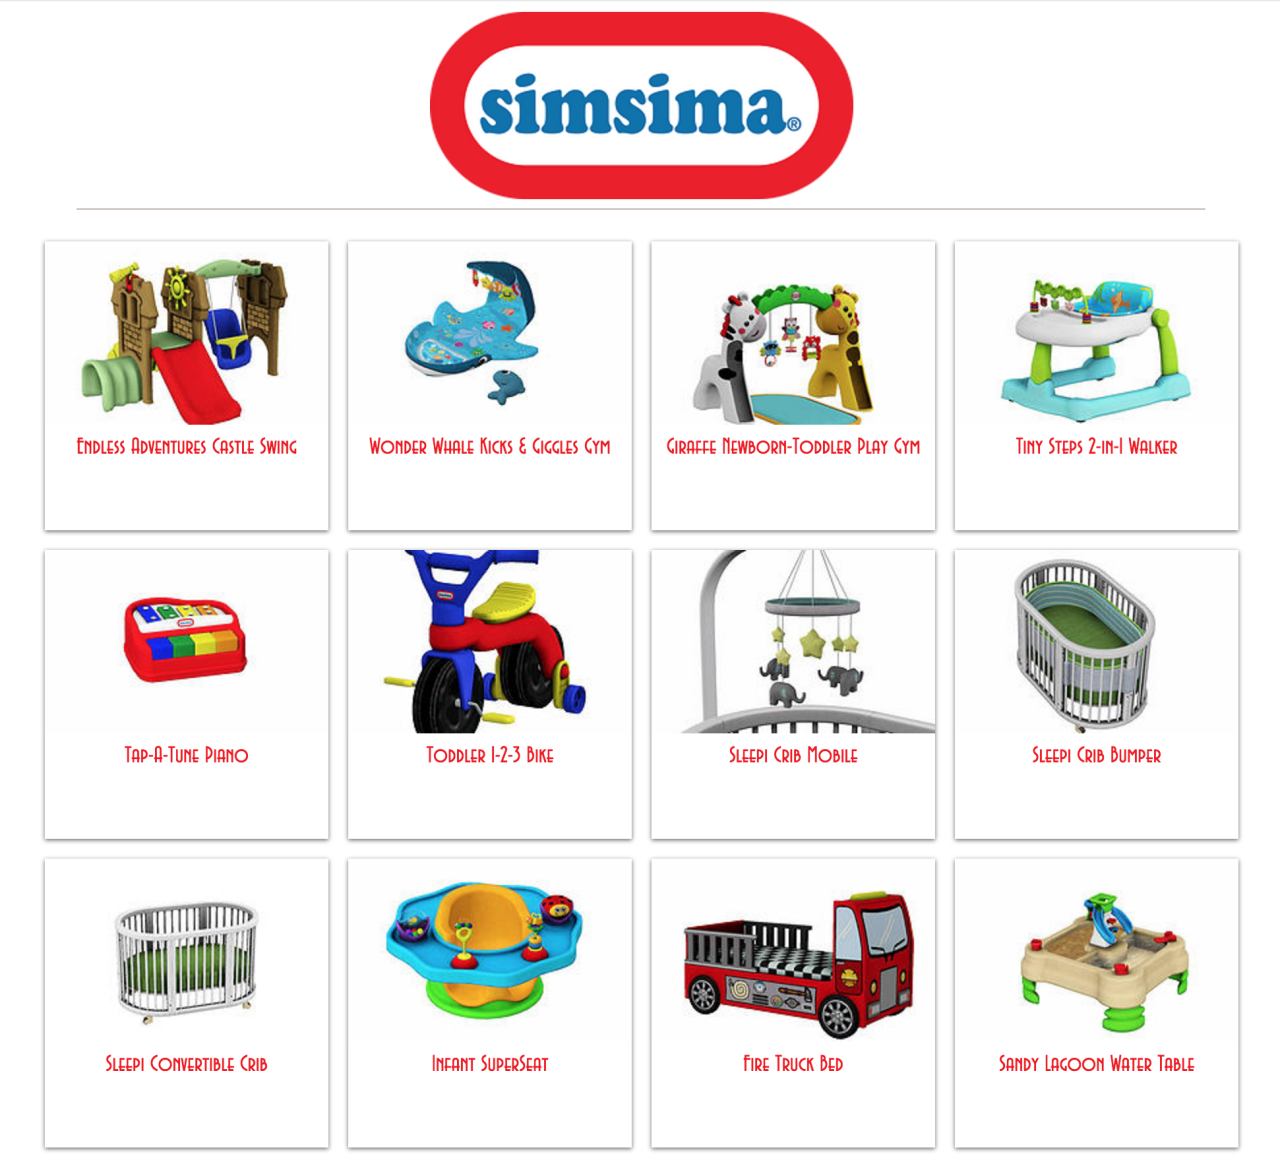 Tv series in the sims 3 yosimsima with out further adieu i have some sim kids - Sims 3 babyzimmer ...